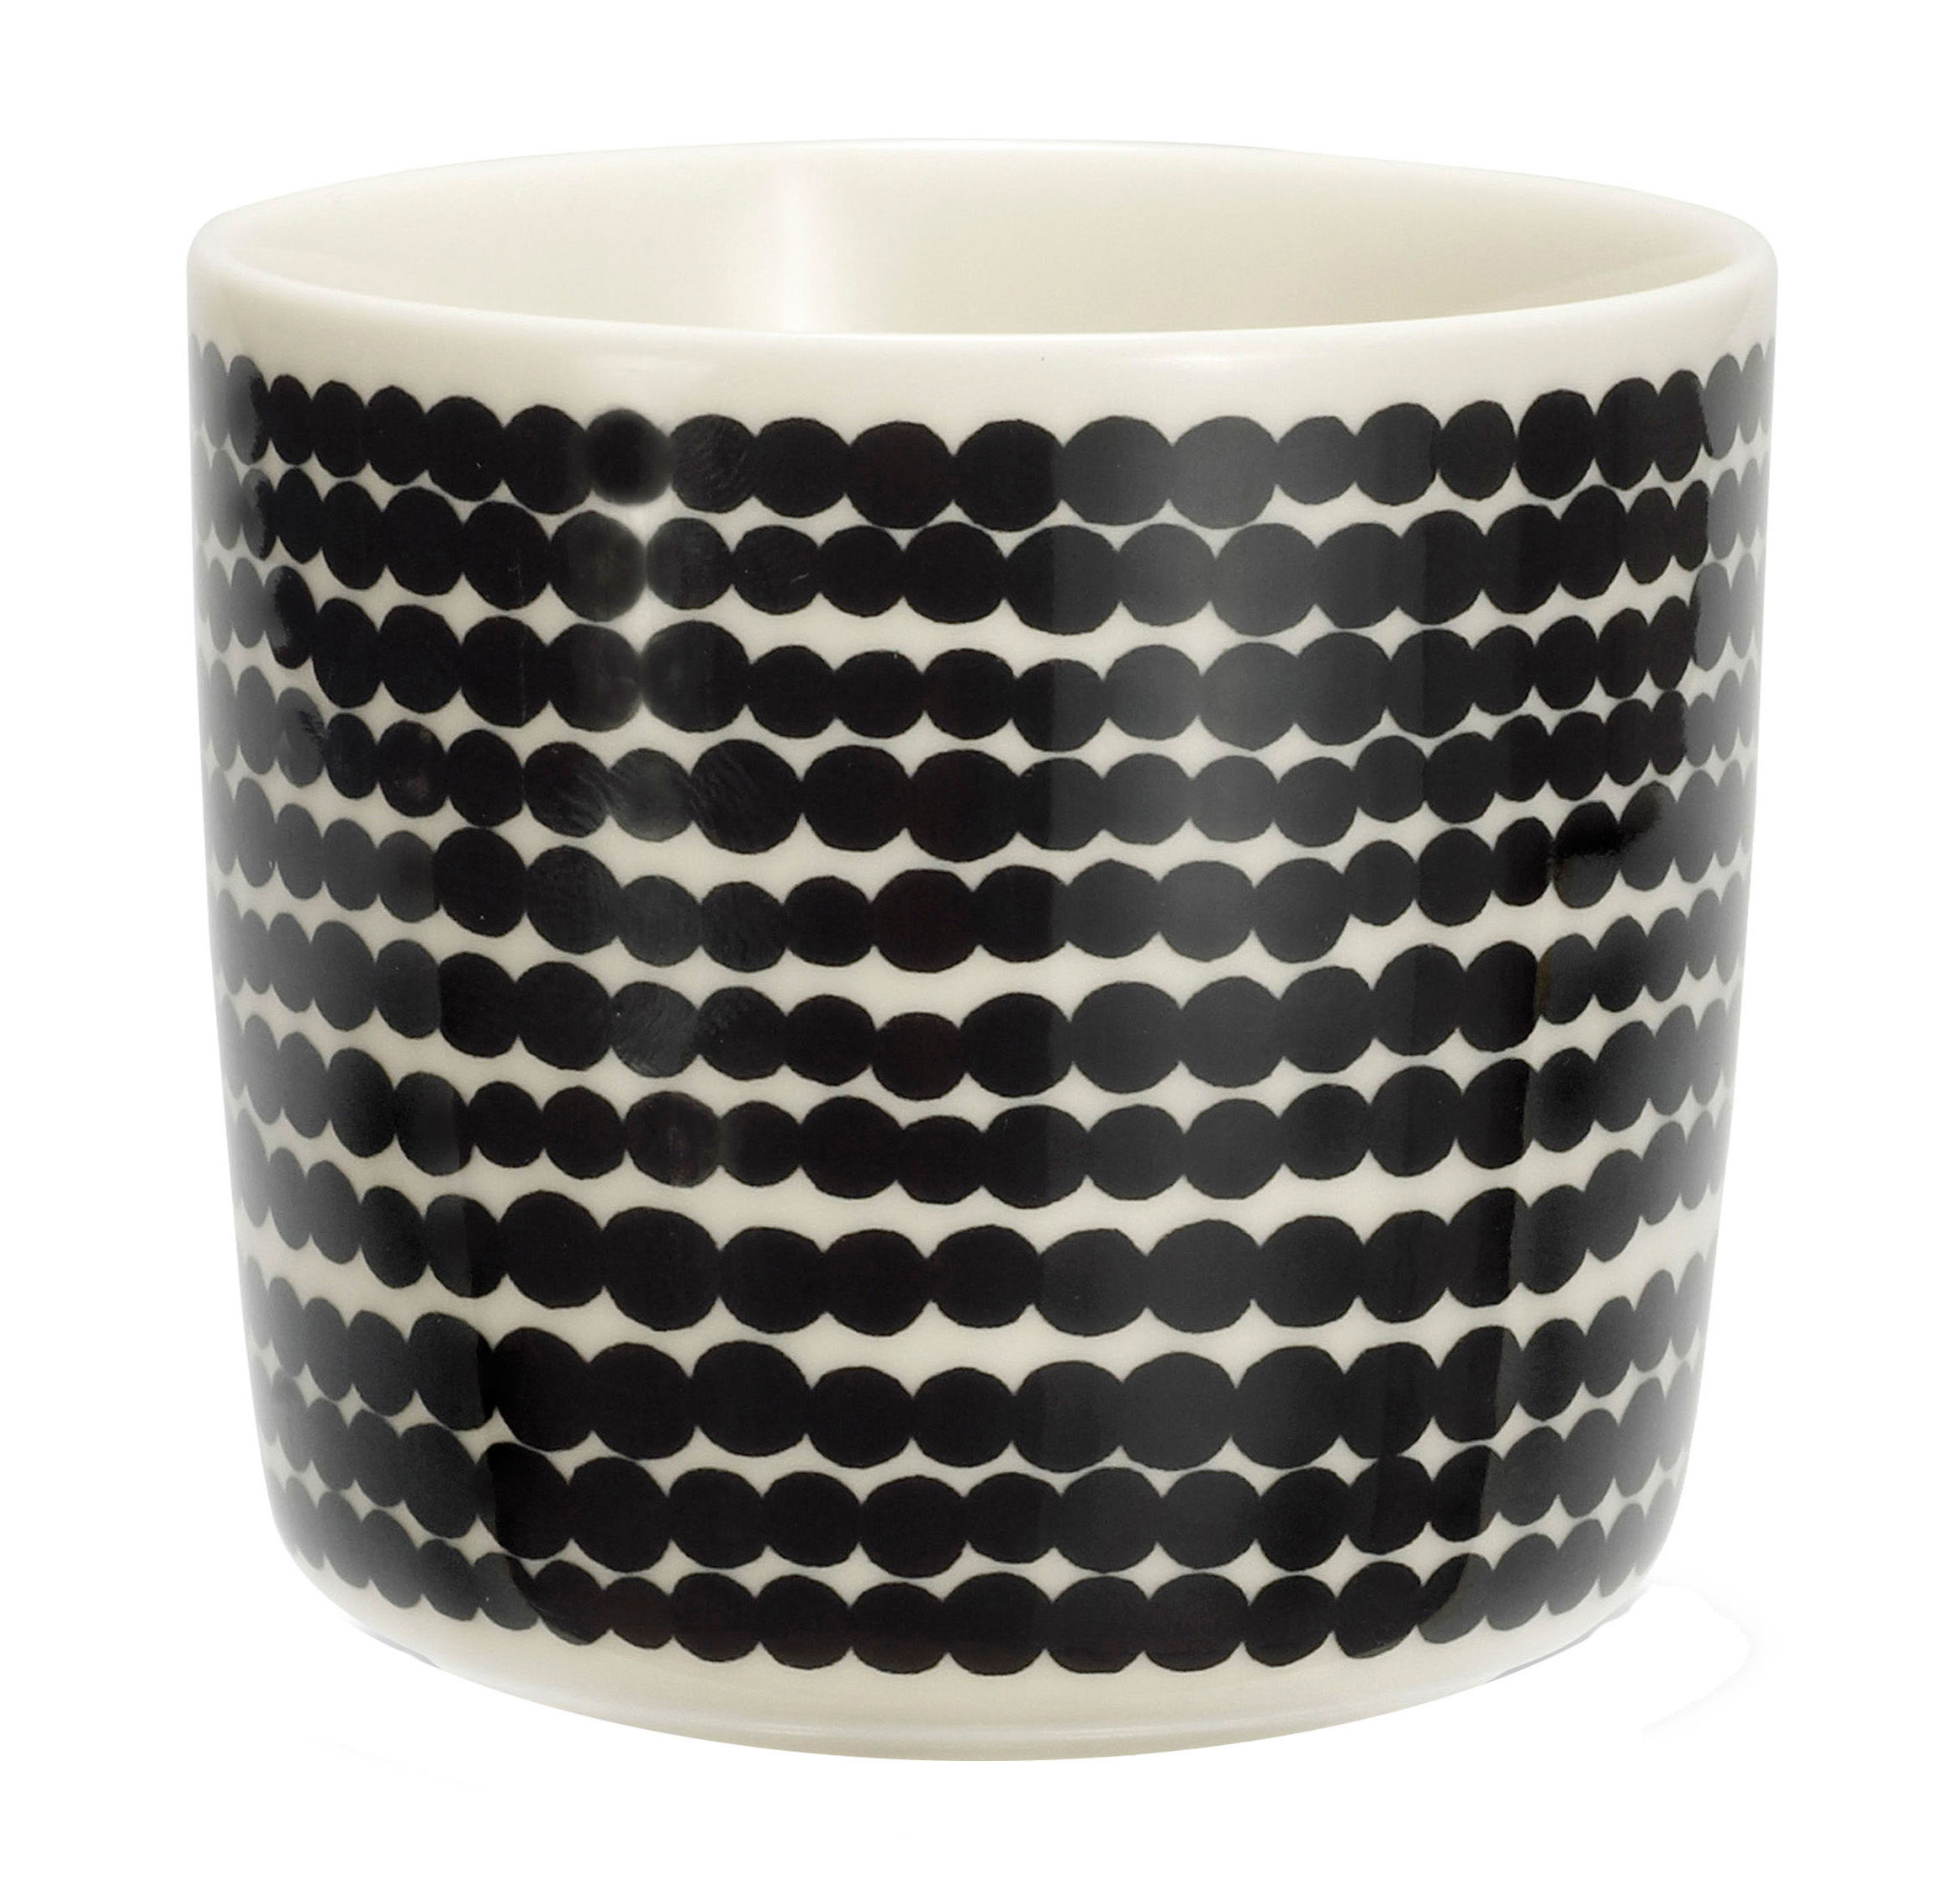 Tableware - Coffee Mugs & Tea Cups - Siirtolapuutarha Coffee cup - Without handle by Marimekko - Räsymatto - Black & white - Enamelled china